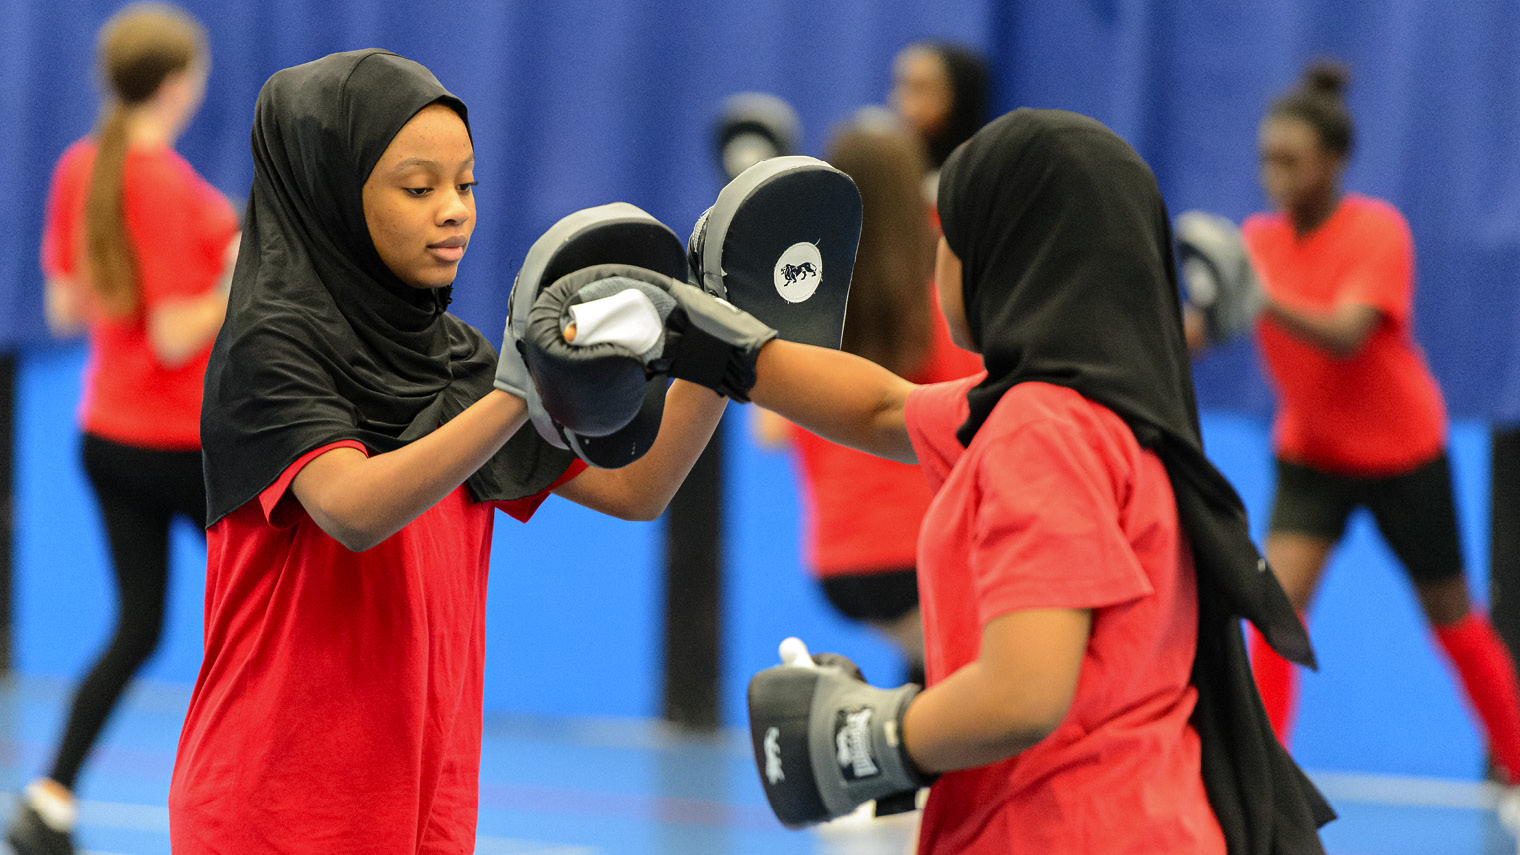 Boxing at Bristol City Academy; Sport England has sped up grant awards to manage the influx of applications amid the crisis